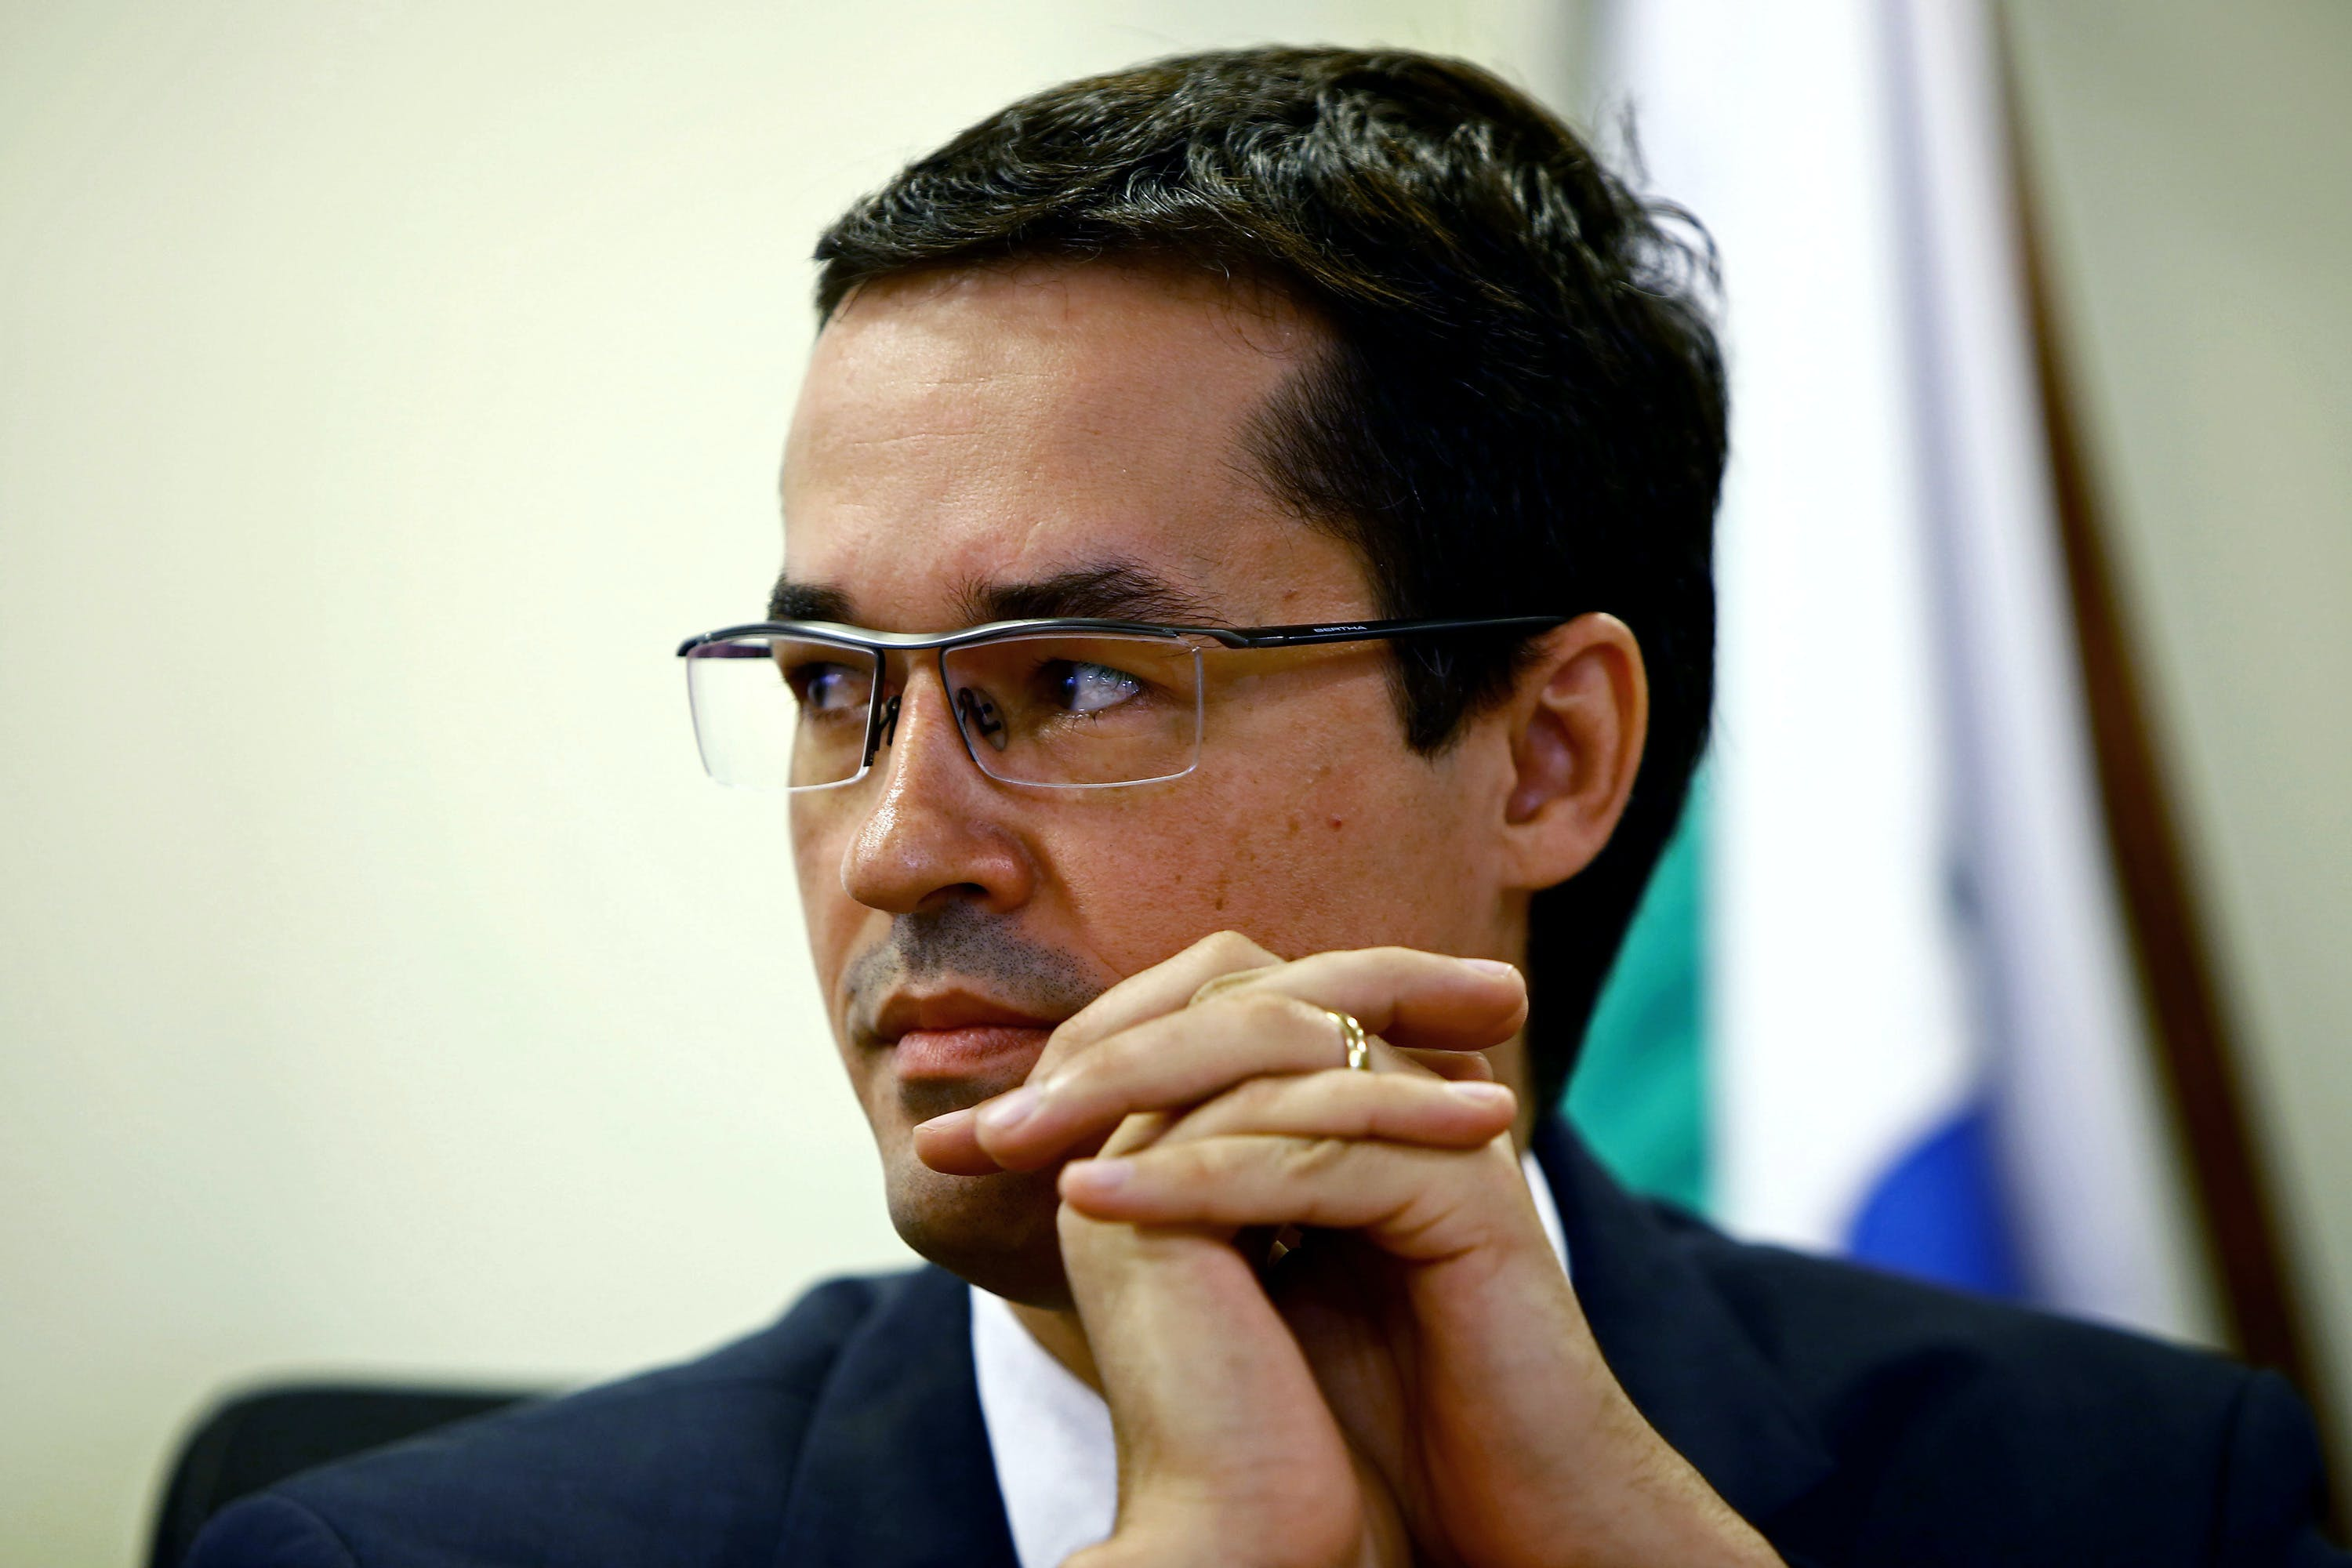 Brazilian Federal Attorney Deltan Dallagnol listens, during the ceremony for the return of resources to Petrobras, which were recovered through cooperation and leniency agreements in connection with Lava Jato operation, in Curitiba, Brazil on December 07, 2017. Petrobras received 654 million reais (200 million dollars) from legal agreements related to Lava Jato operation, the largest corruption investigation in Brazil's history, the state-owned company reported. / AFP PHOTO / Heuler Andrey (Photo credit should read HEULER ANDREY/AFP/Getty Images)